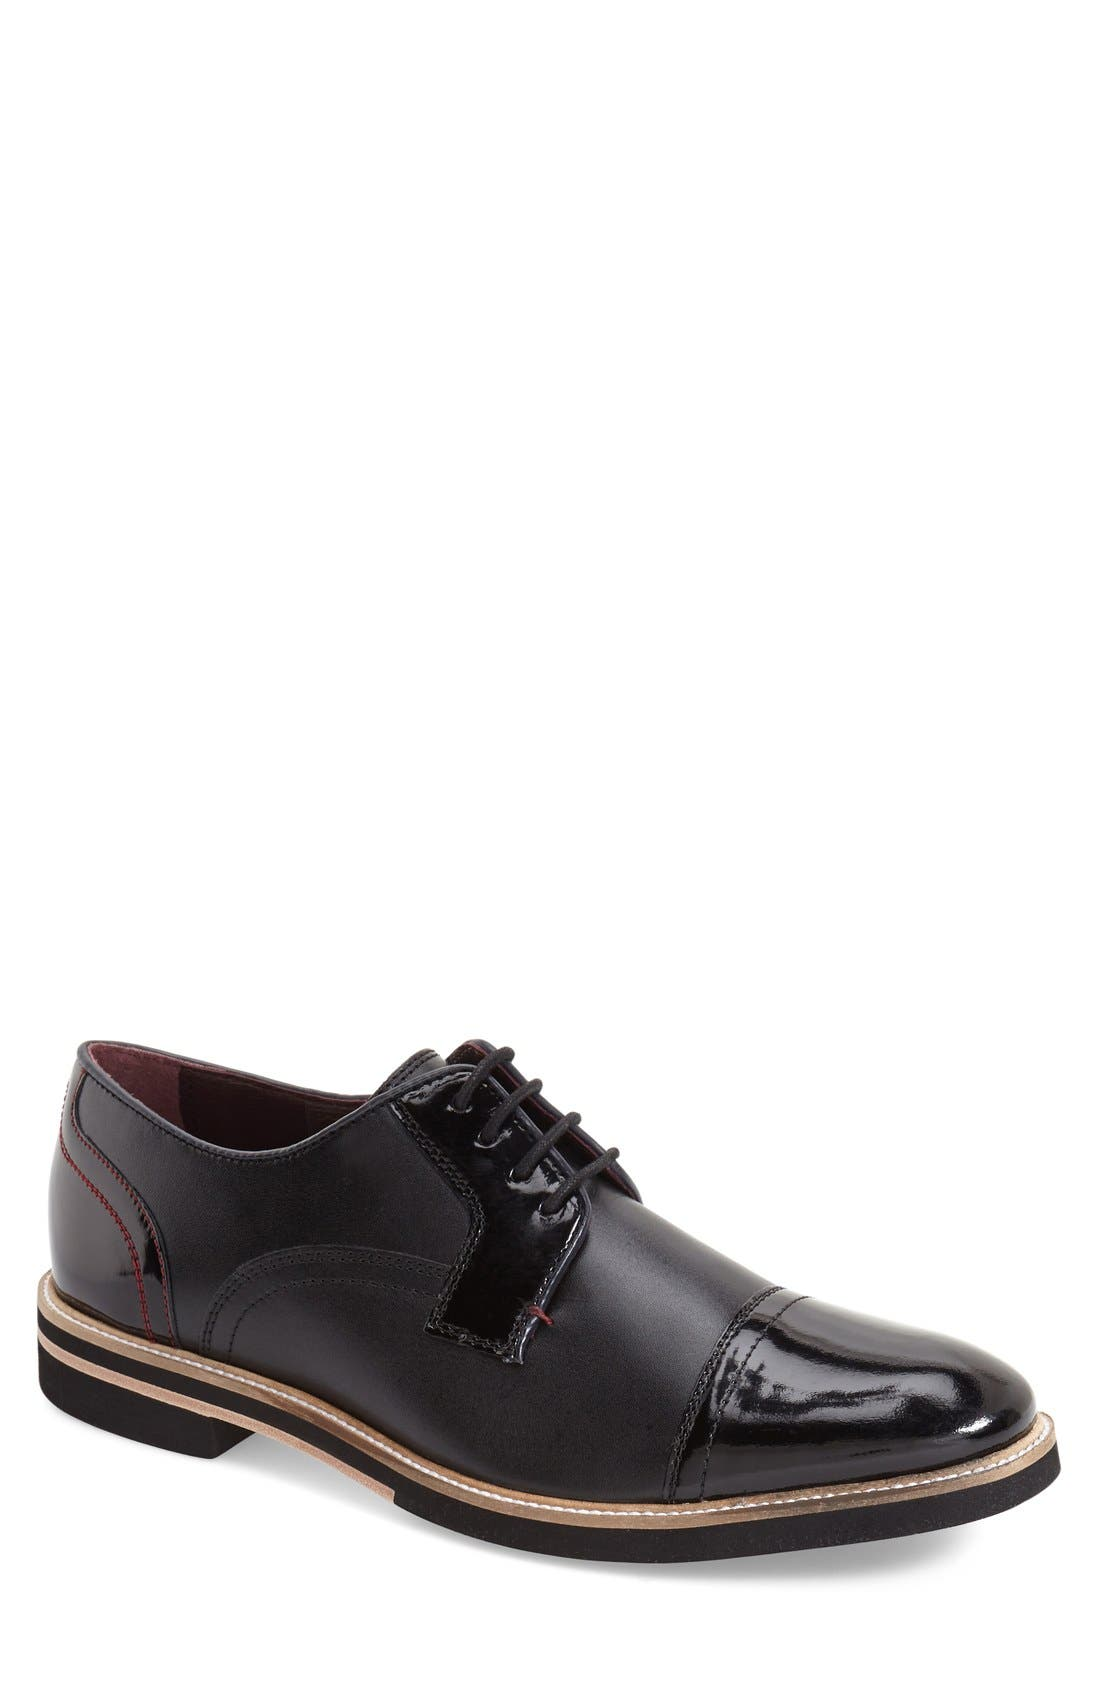 Alternate Image 1 Selected - Ted Baker London 'Braythe 2' Cap Toe Derby (Men)